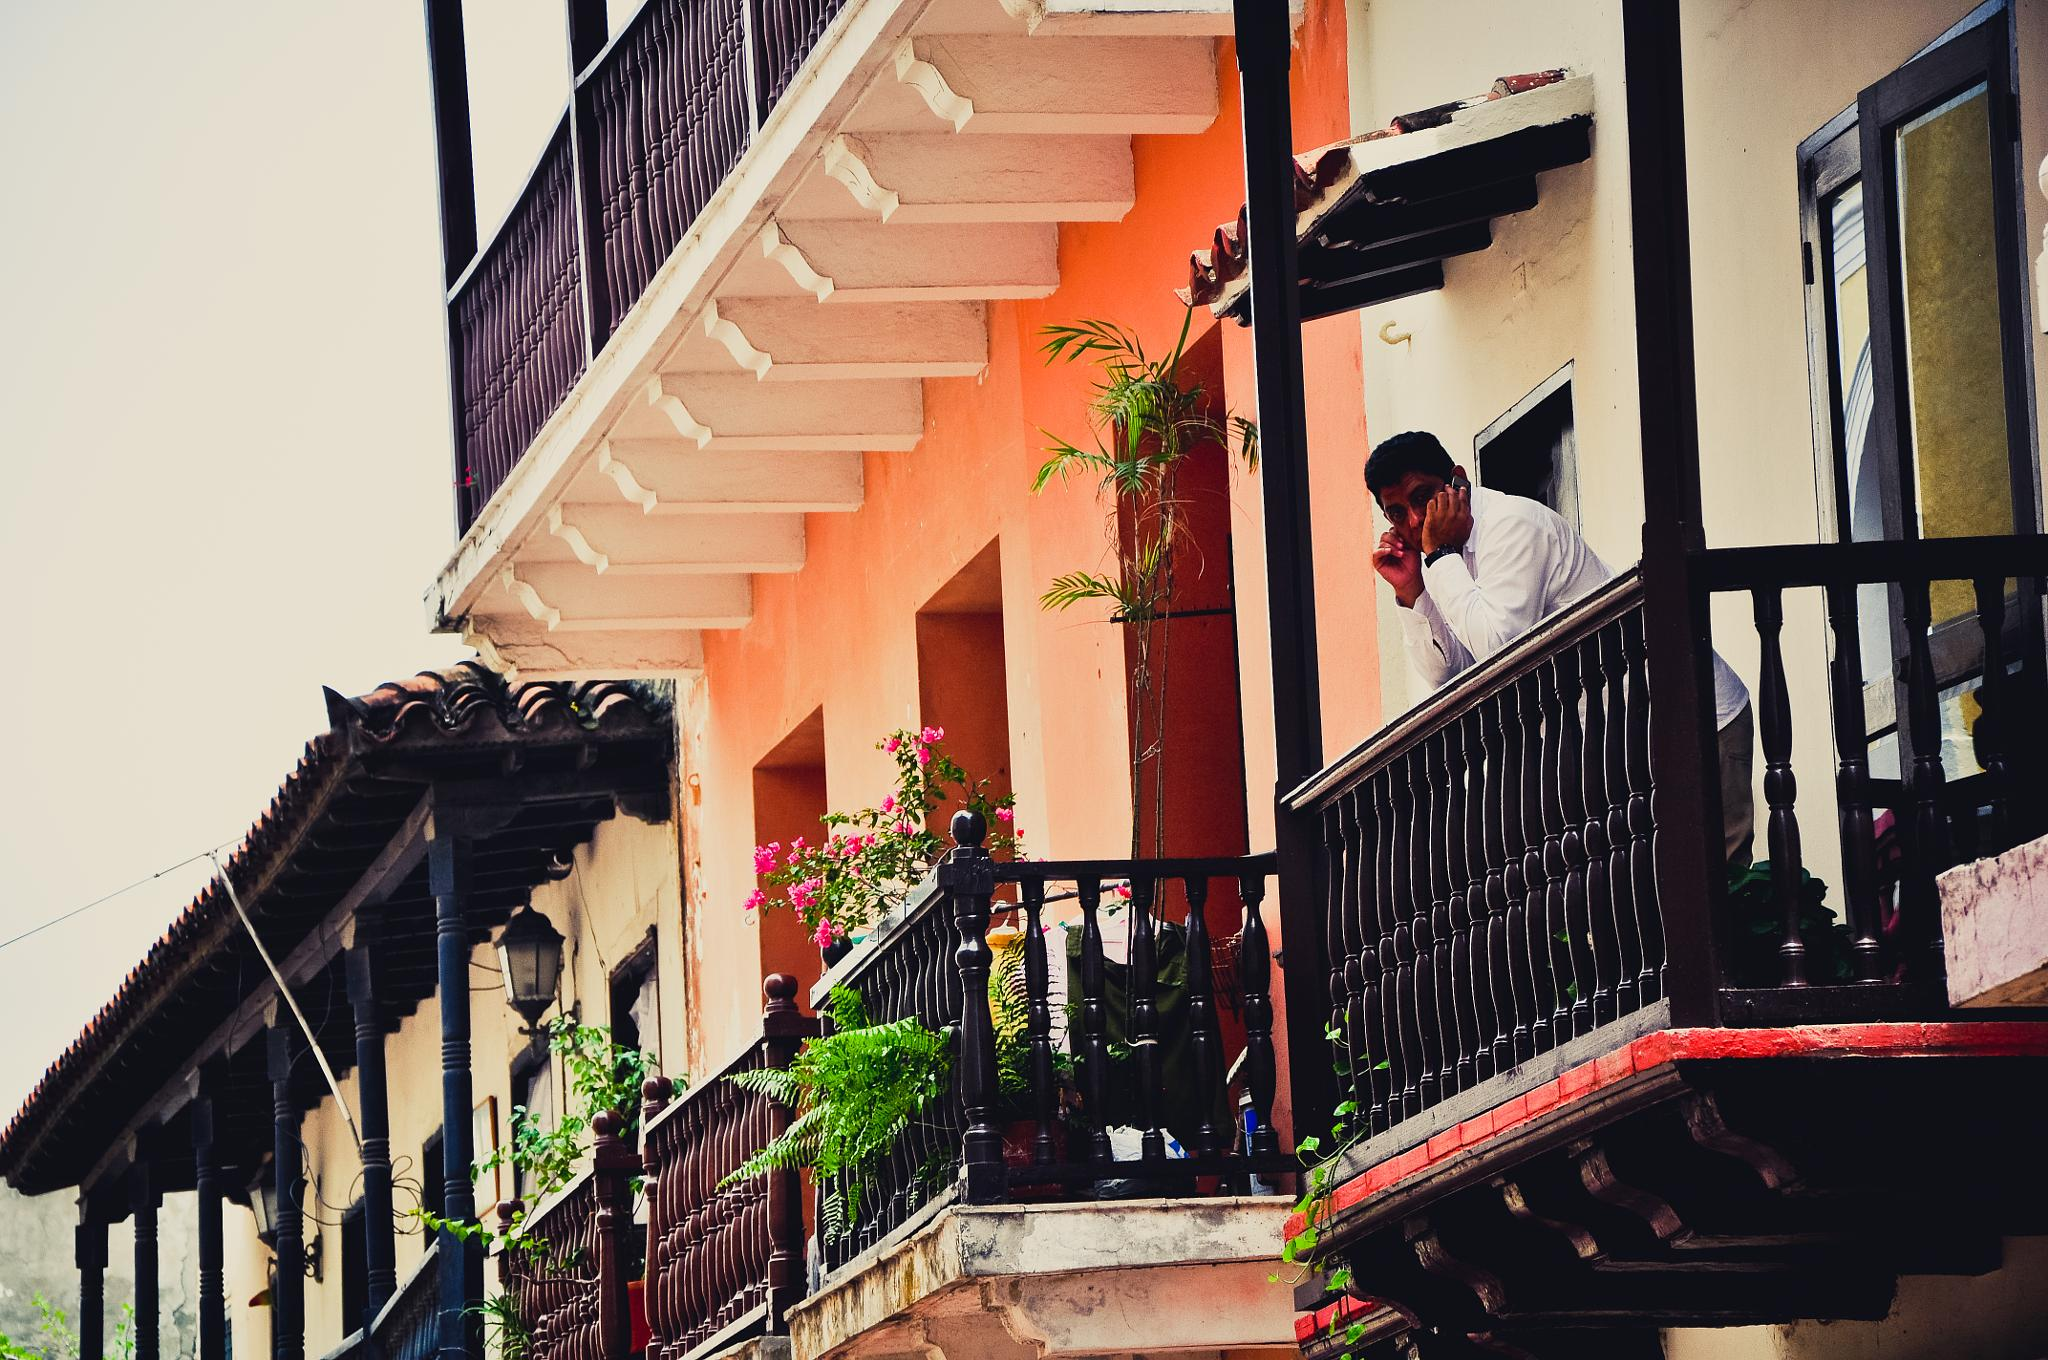 Colonial Architecture in Old Town Cartagena (Colombia) by Jiri Bielicky